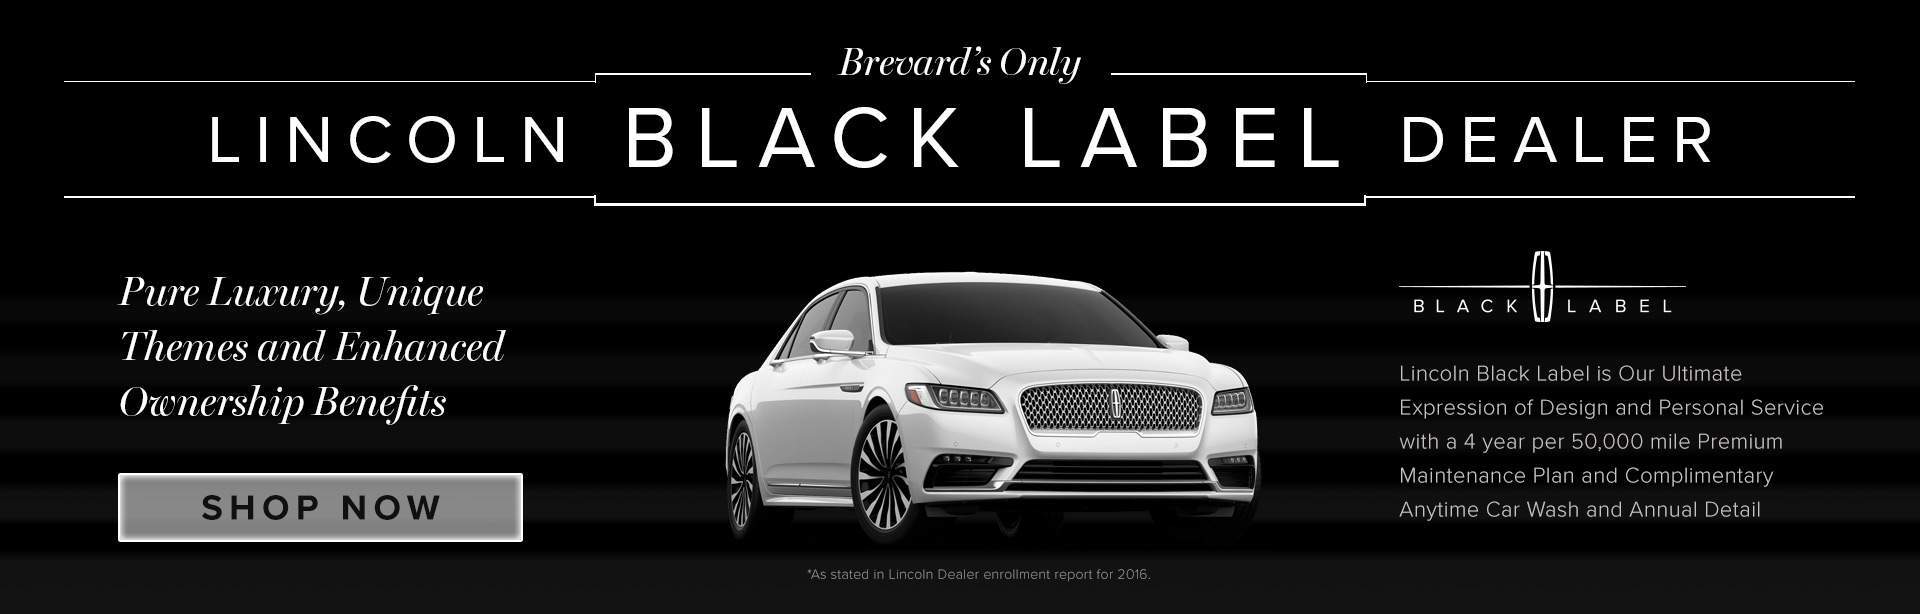 Black Label Dealer